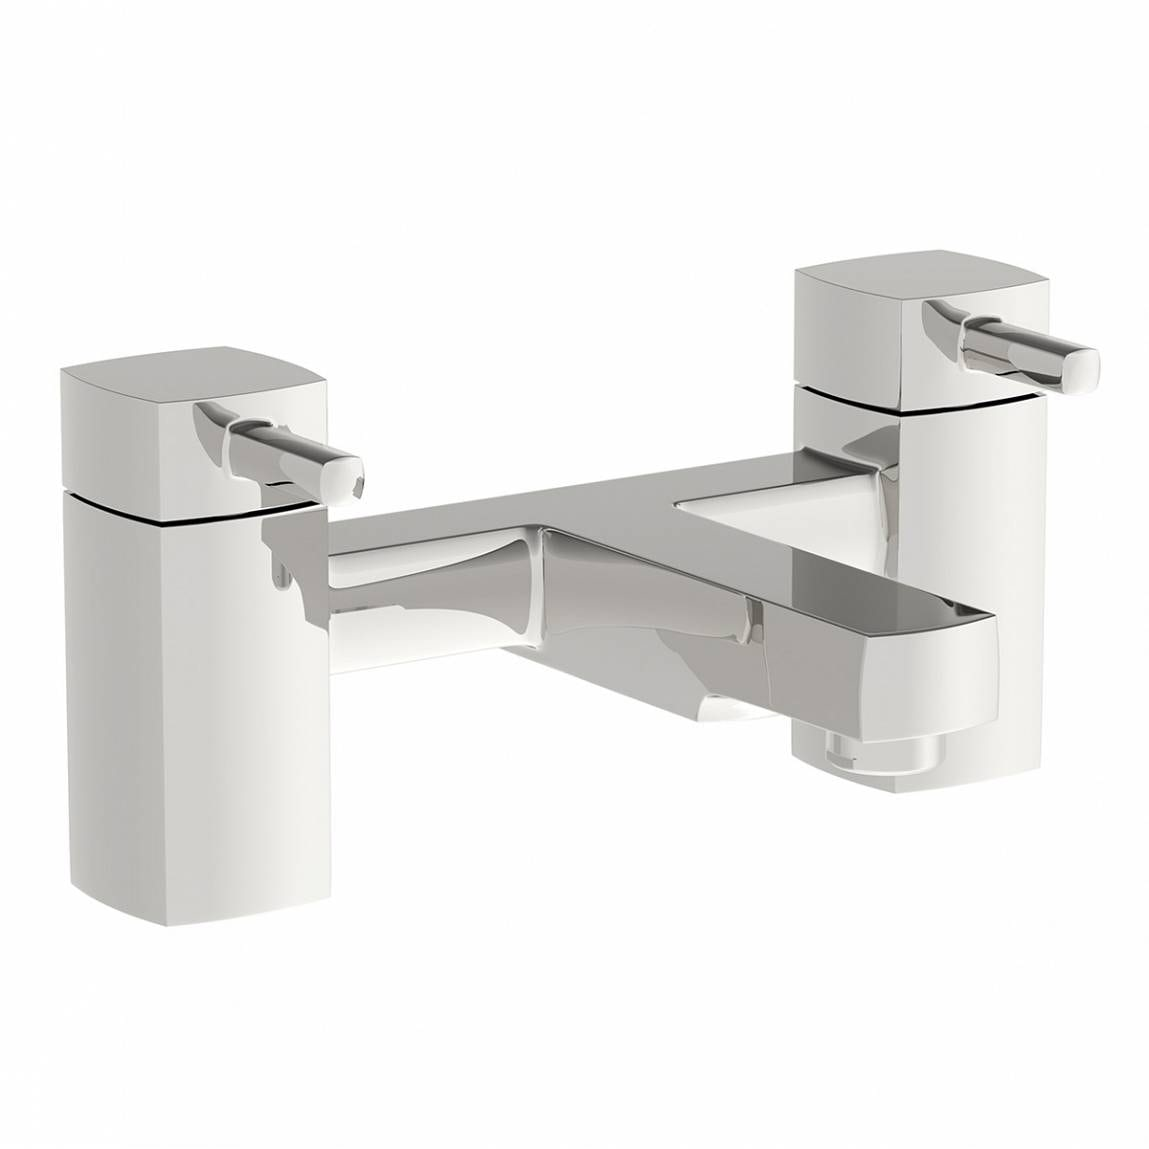 Orchard Derwent bath mixer tap offer pack